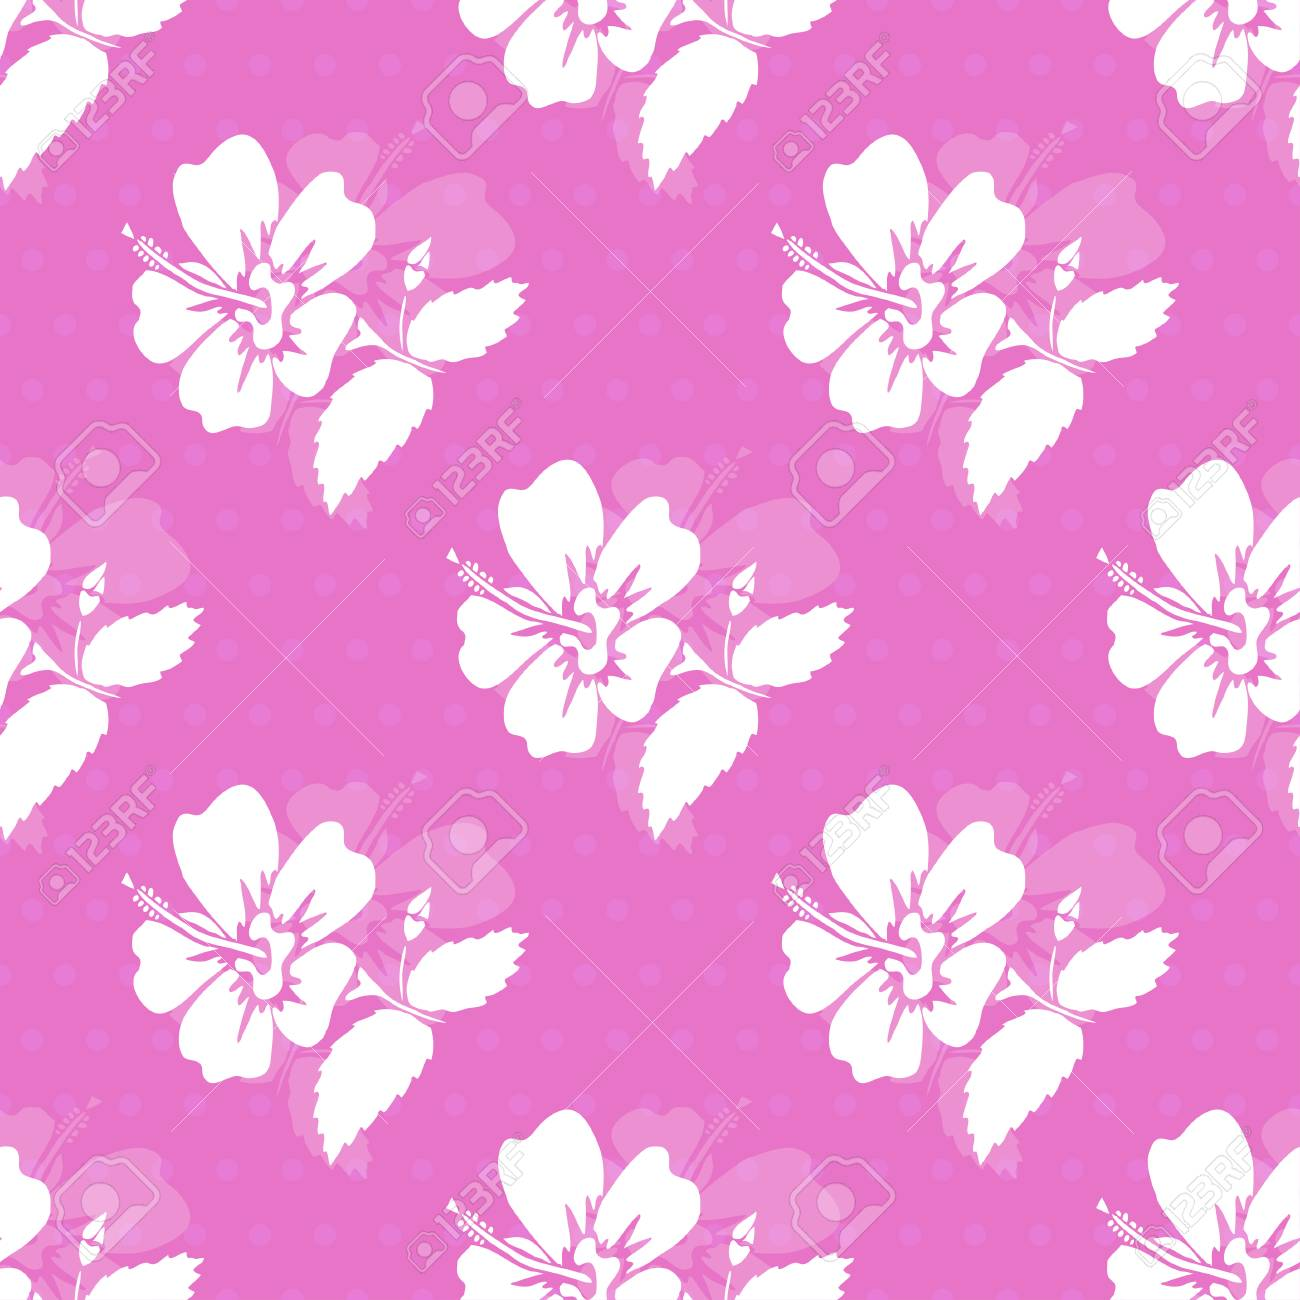 Elegant Seamless Pattern With Hand Drawn Decorative Hibiscus